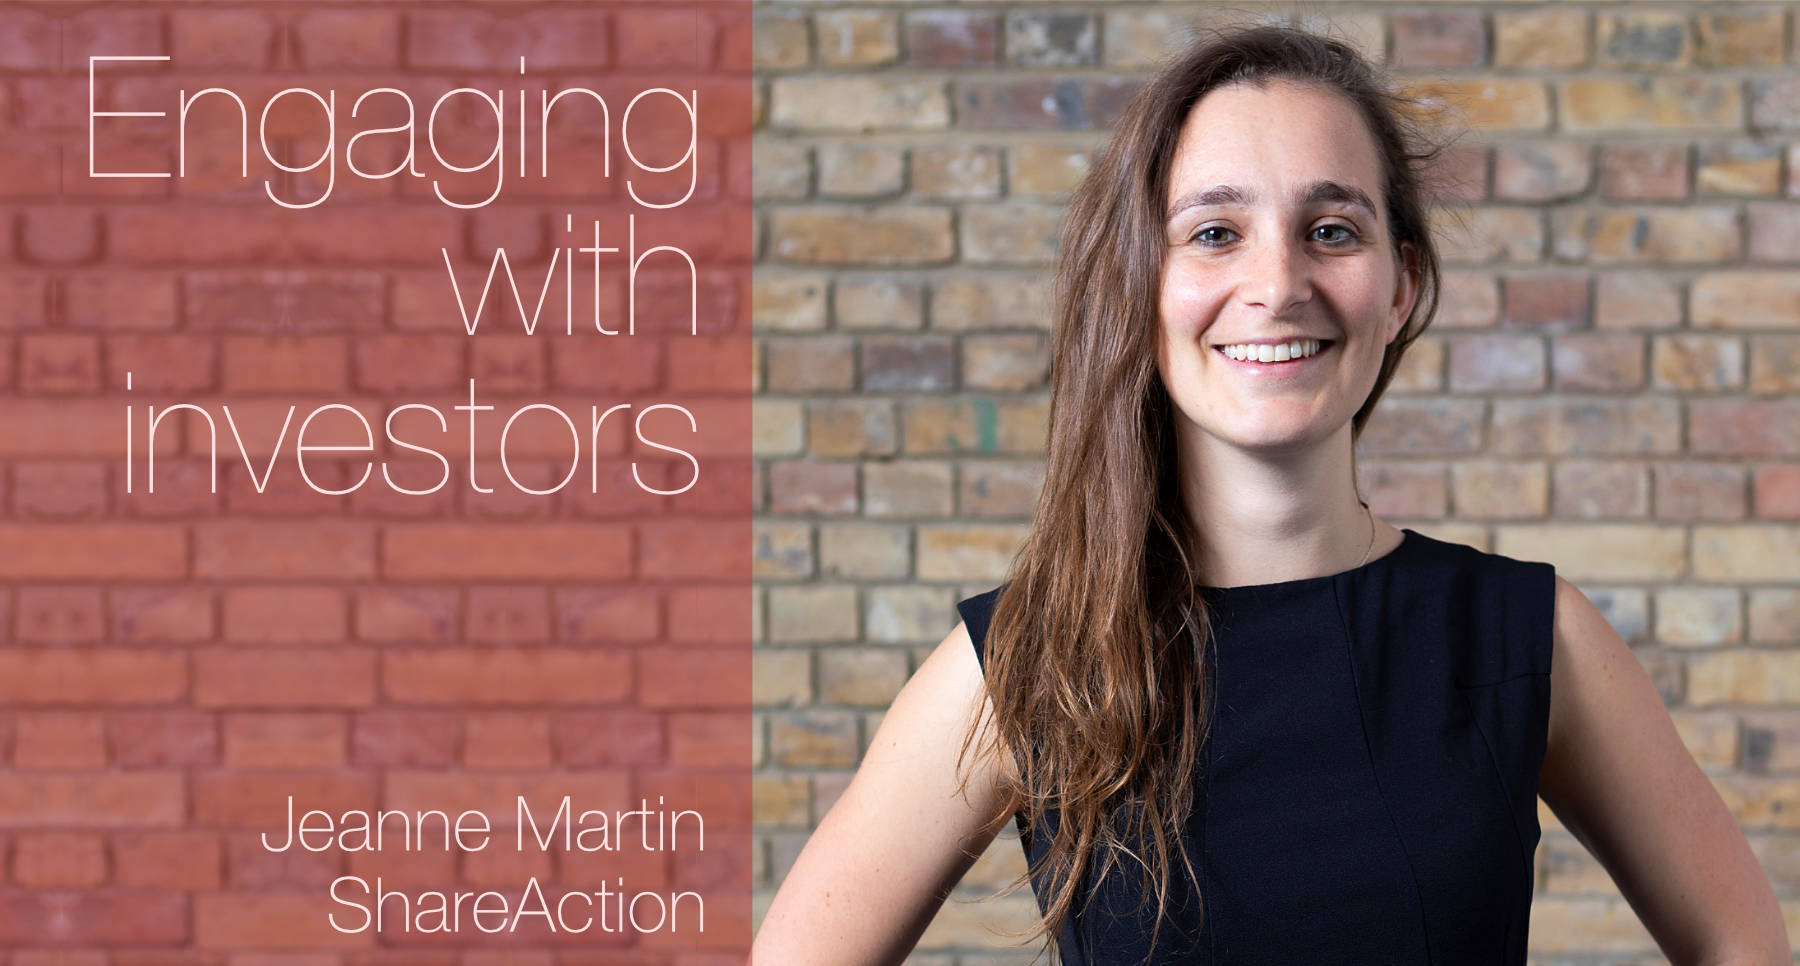 EWiF : Jeanne Martin : Engaging with investors